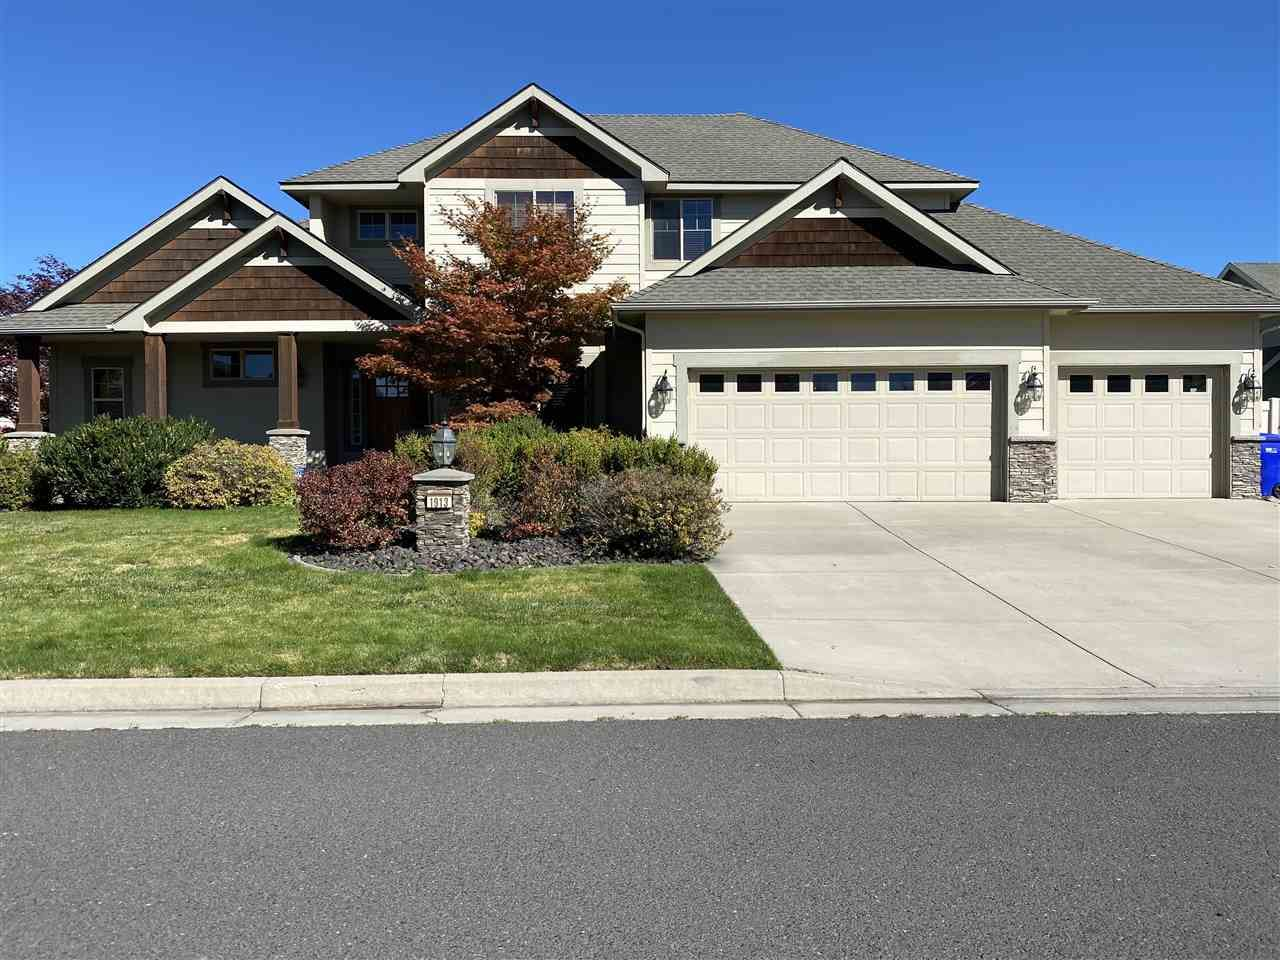 1913 S Morningside Heights Dr, Greenacres, WA 99016 - #: 202024593